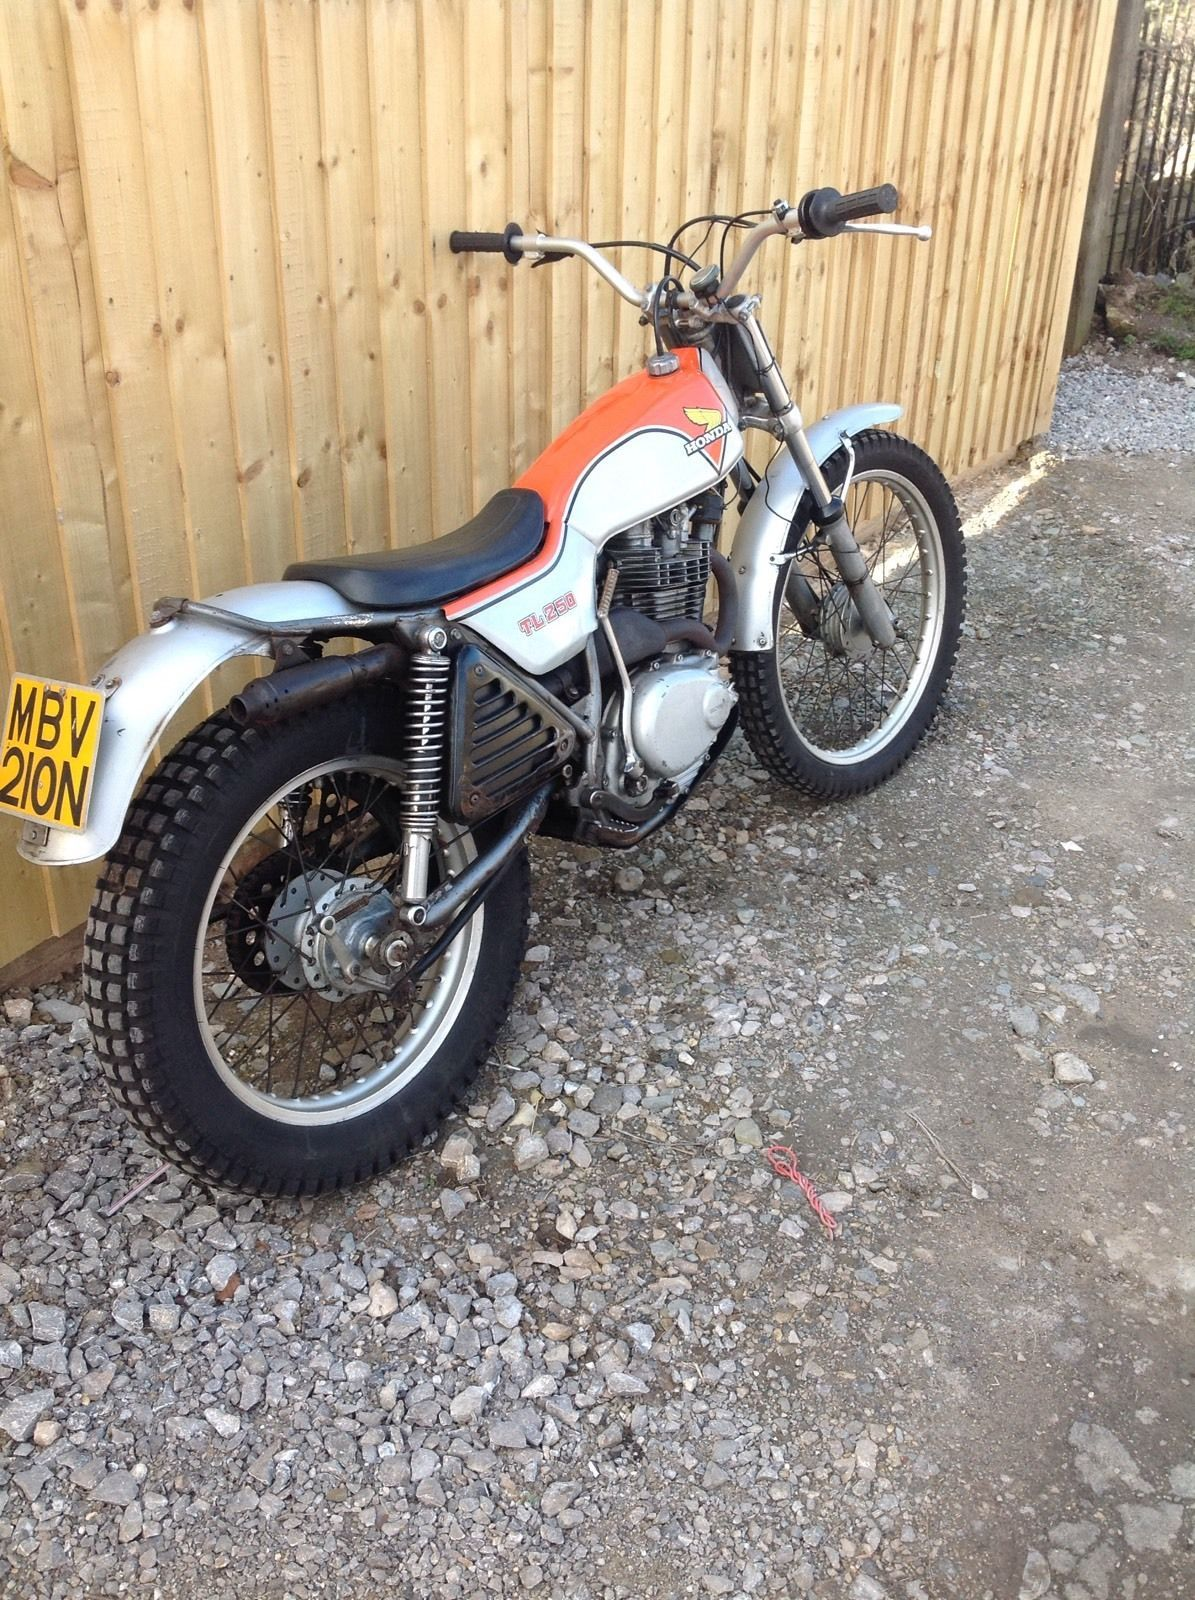 Honda TL 250 Trials Motorcycle | eBay | MOTORCYCLE - TRIALS